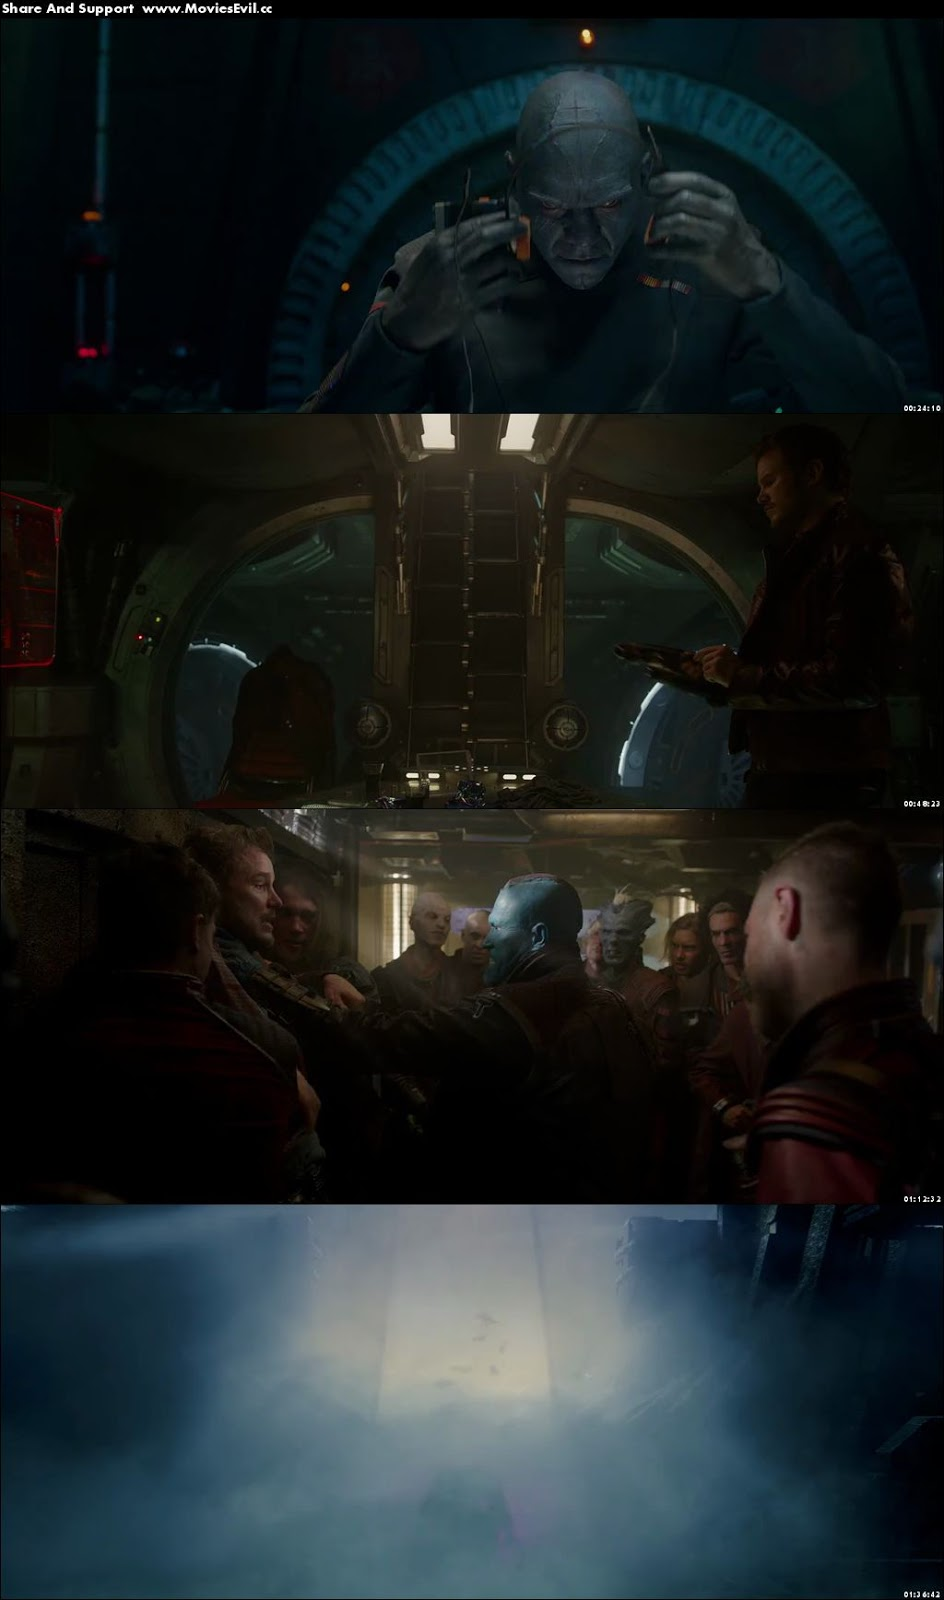 Guardians Of The Galaxy 2014 Dual Audio 720p BluRay x264 Full Movie Download,Guardians Of The Galaxy 2014 movie download,Guardians Of The Galaxy 2014 direct link download,Guardians Of The Galaxy 2014300 mb dual audio download,Guardians Of The Galaxy 2014 watch online hd hindi dubbed,Guardians Of The Galaxy 2014 720p hindi dubbed download,Guardians Of The Galaxy 2014720p pxl download,Guardians Of The Galaxy 2014 dual audio worldfree4u download,Guardians Of The Galaxy 2014 9xmovies download